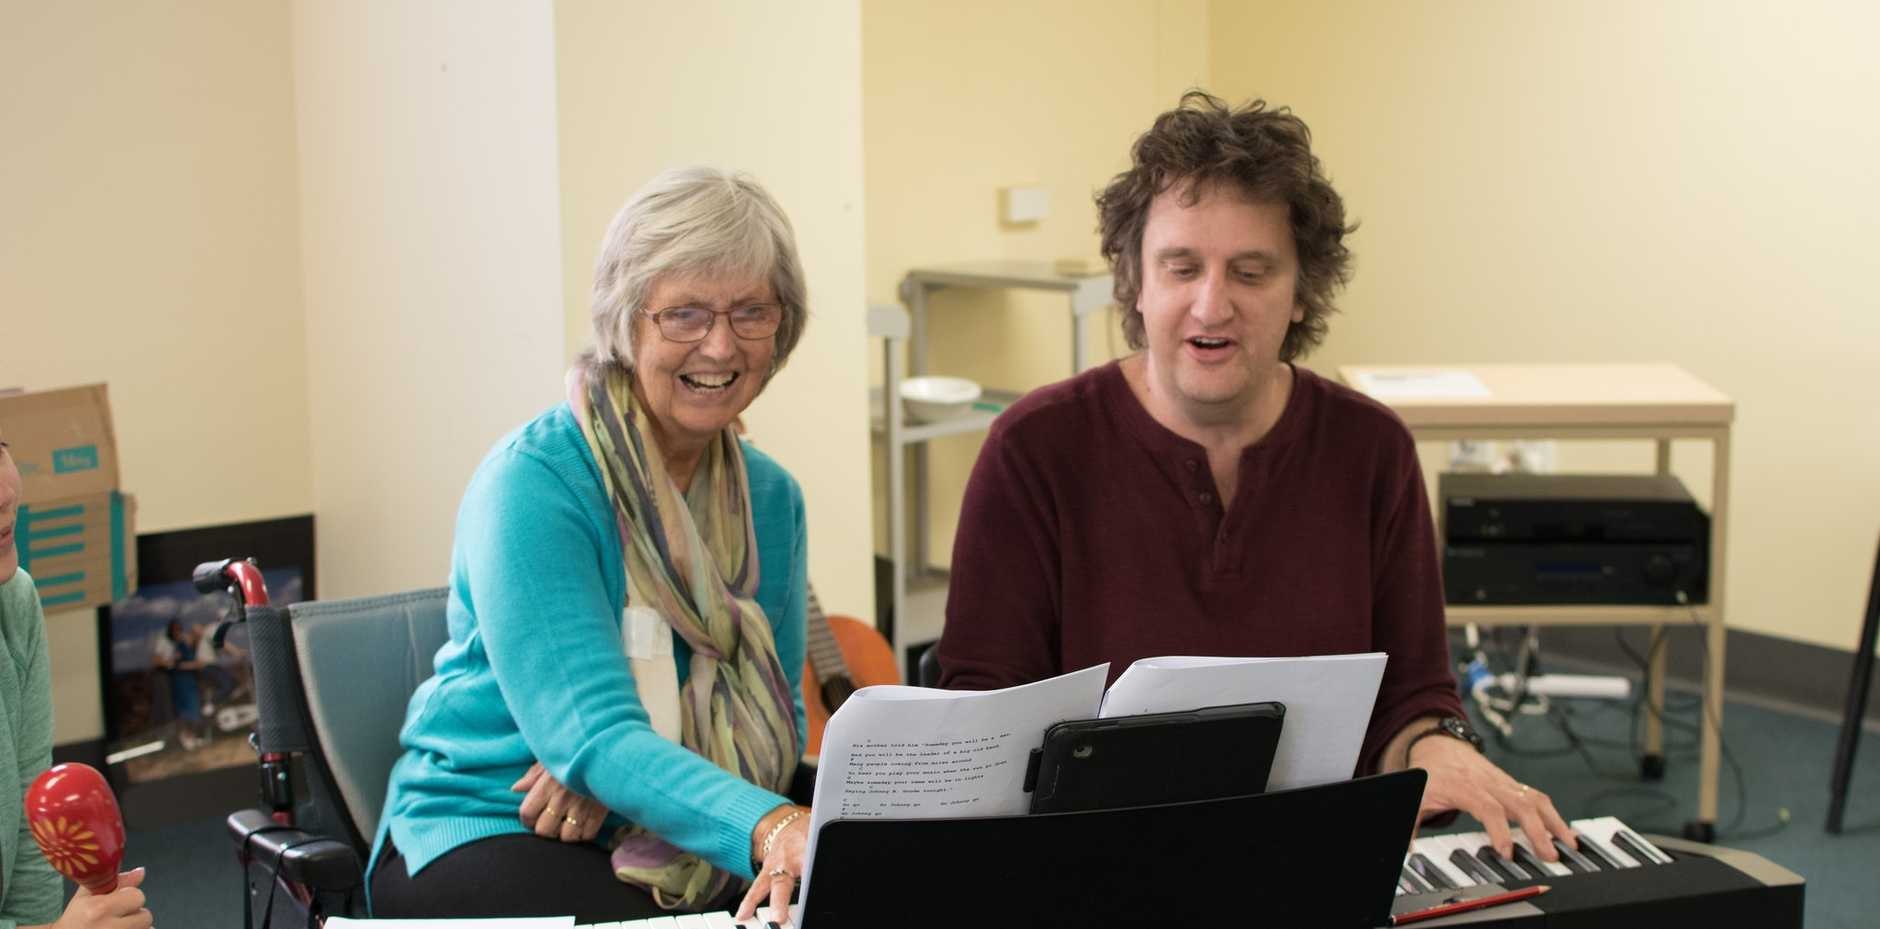 CREATIVE HEALTH: Musician Pete McDonald teaching a participant to play piano during an Arts on Prescription music program.